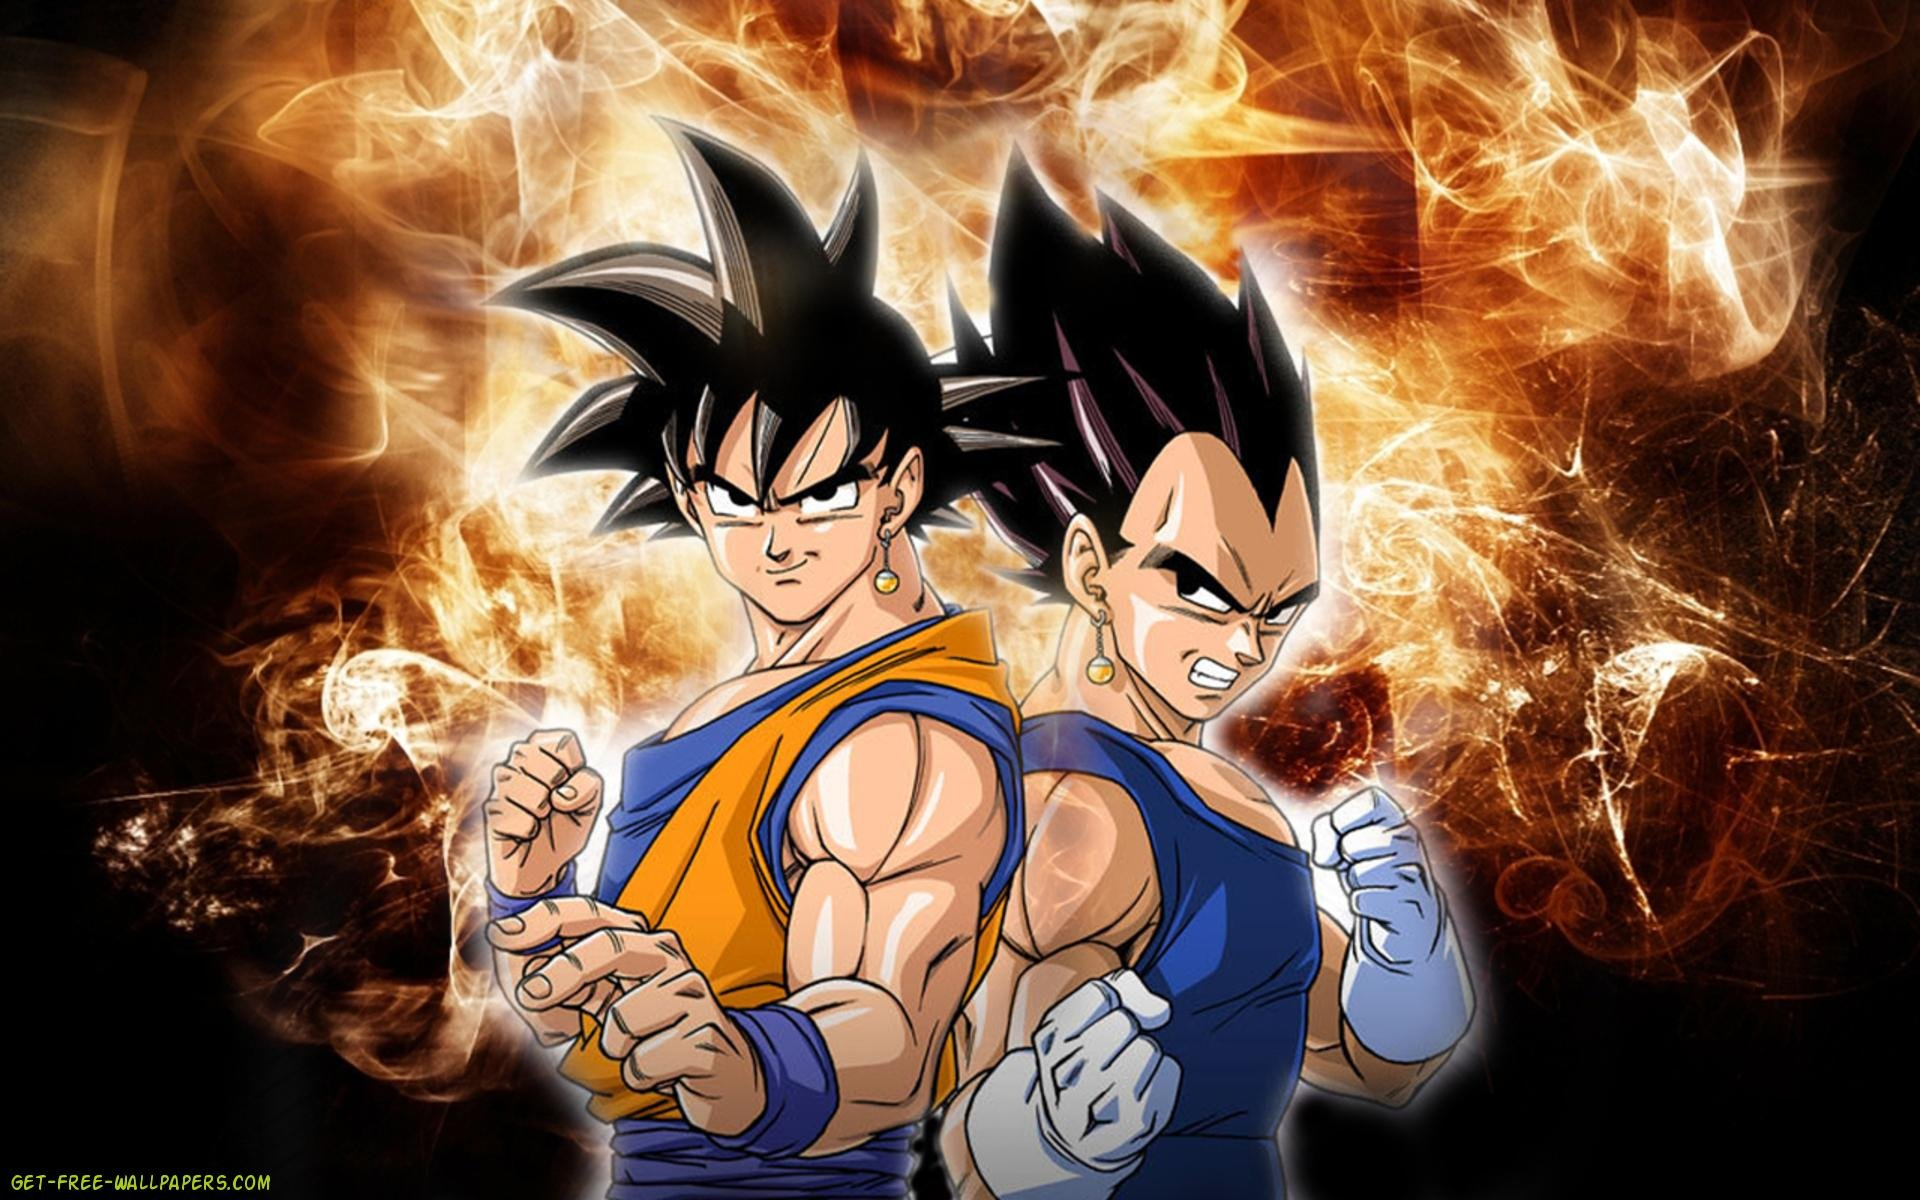 Vegeta 4k Wallpapers For Your Desktop Or Mobile Screen Free And Easy To Download